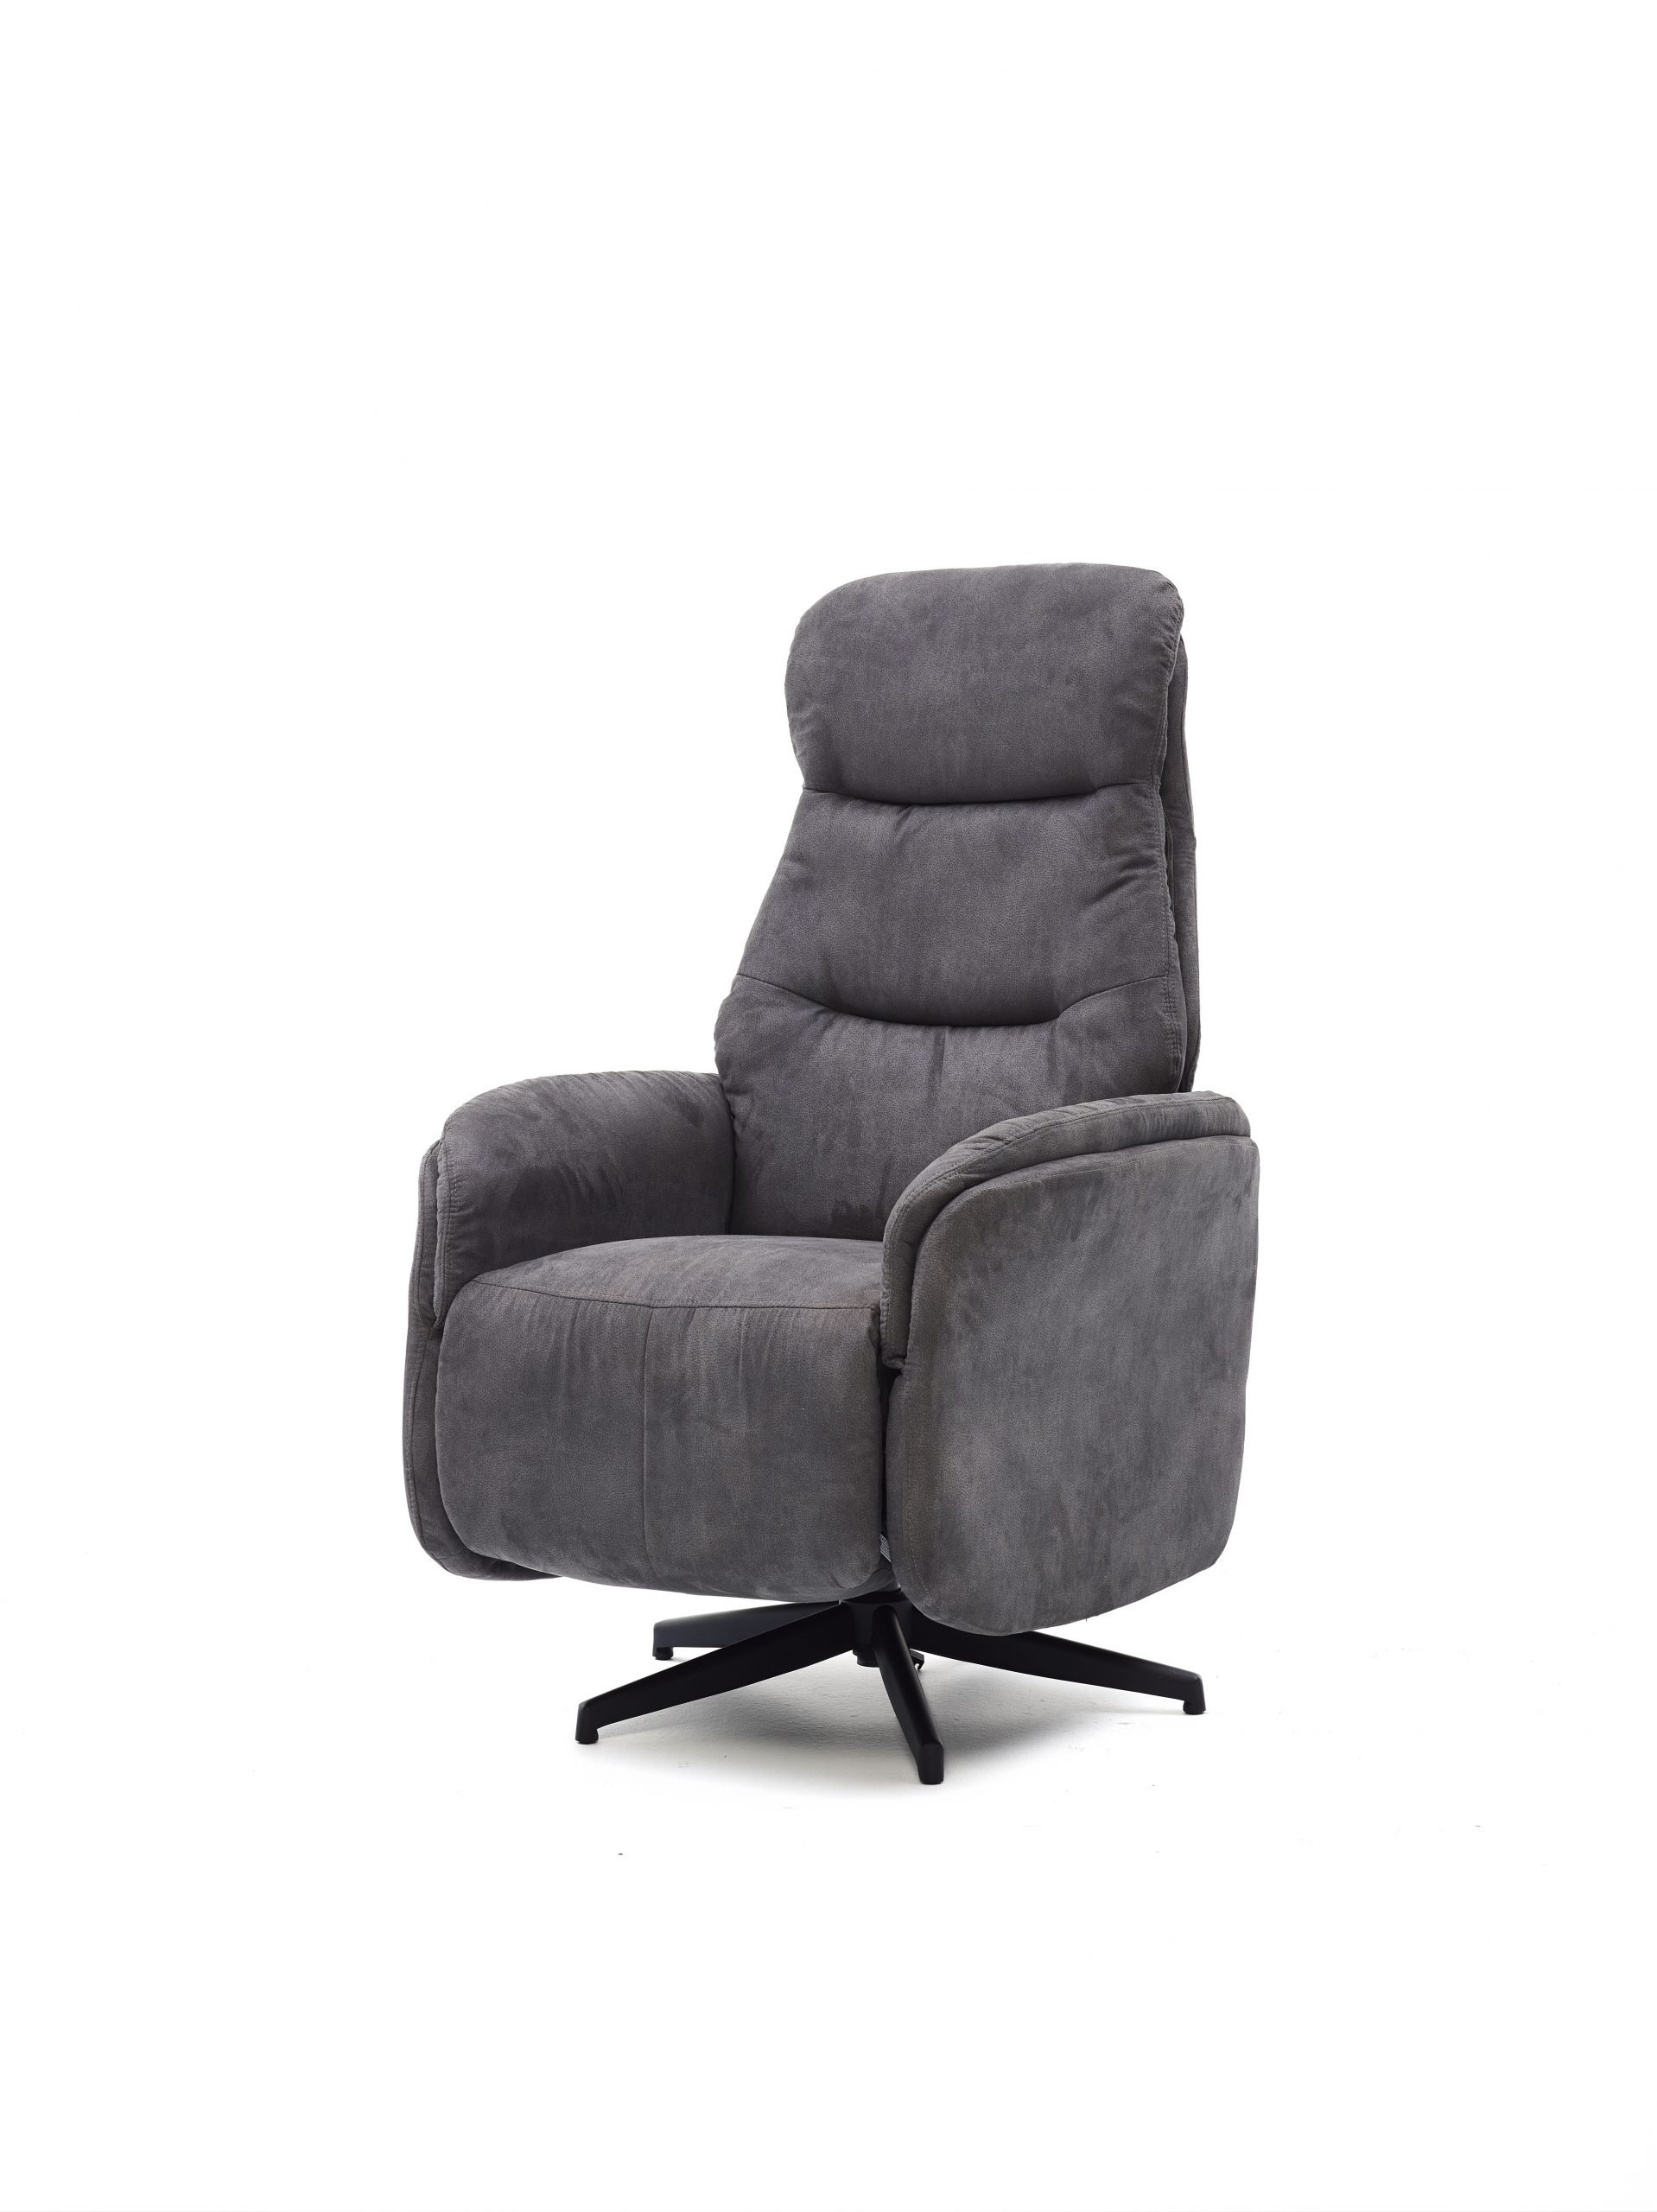 Fauteuil Relax R420 – Conforama Luxembourg avec Fauteuil Relax Conforama